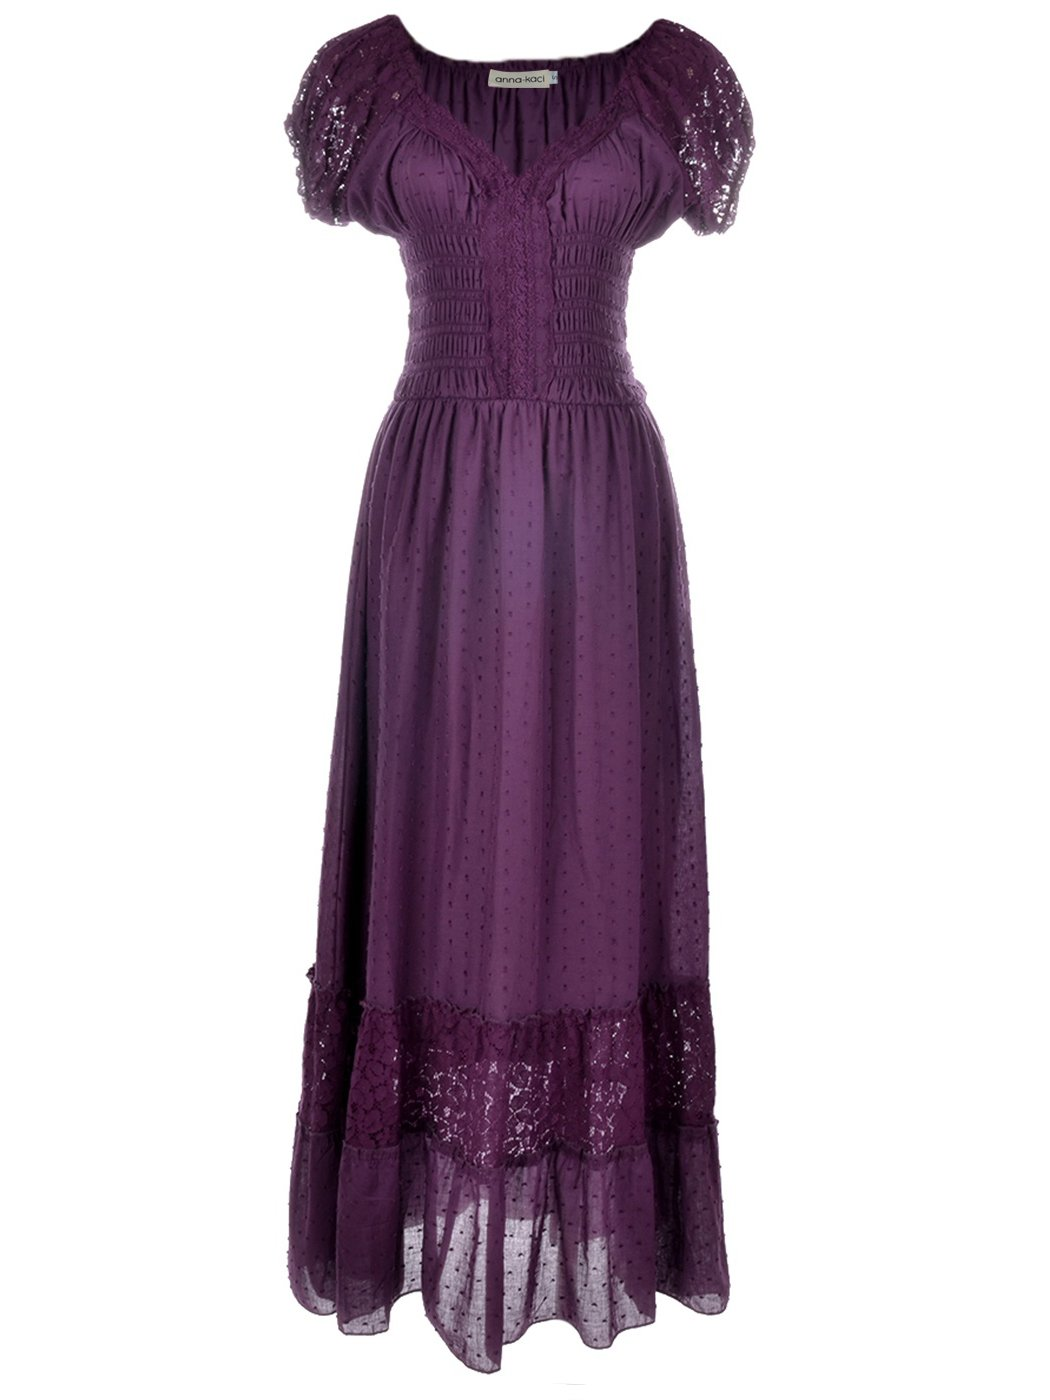 Renaissance Maiden Inspired Purple Lace Cap Sleeve Trim Chemise Underdress - DeluxeAdultCostumes.com